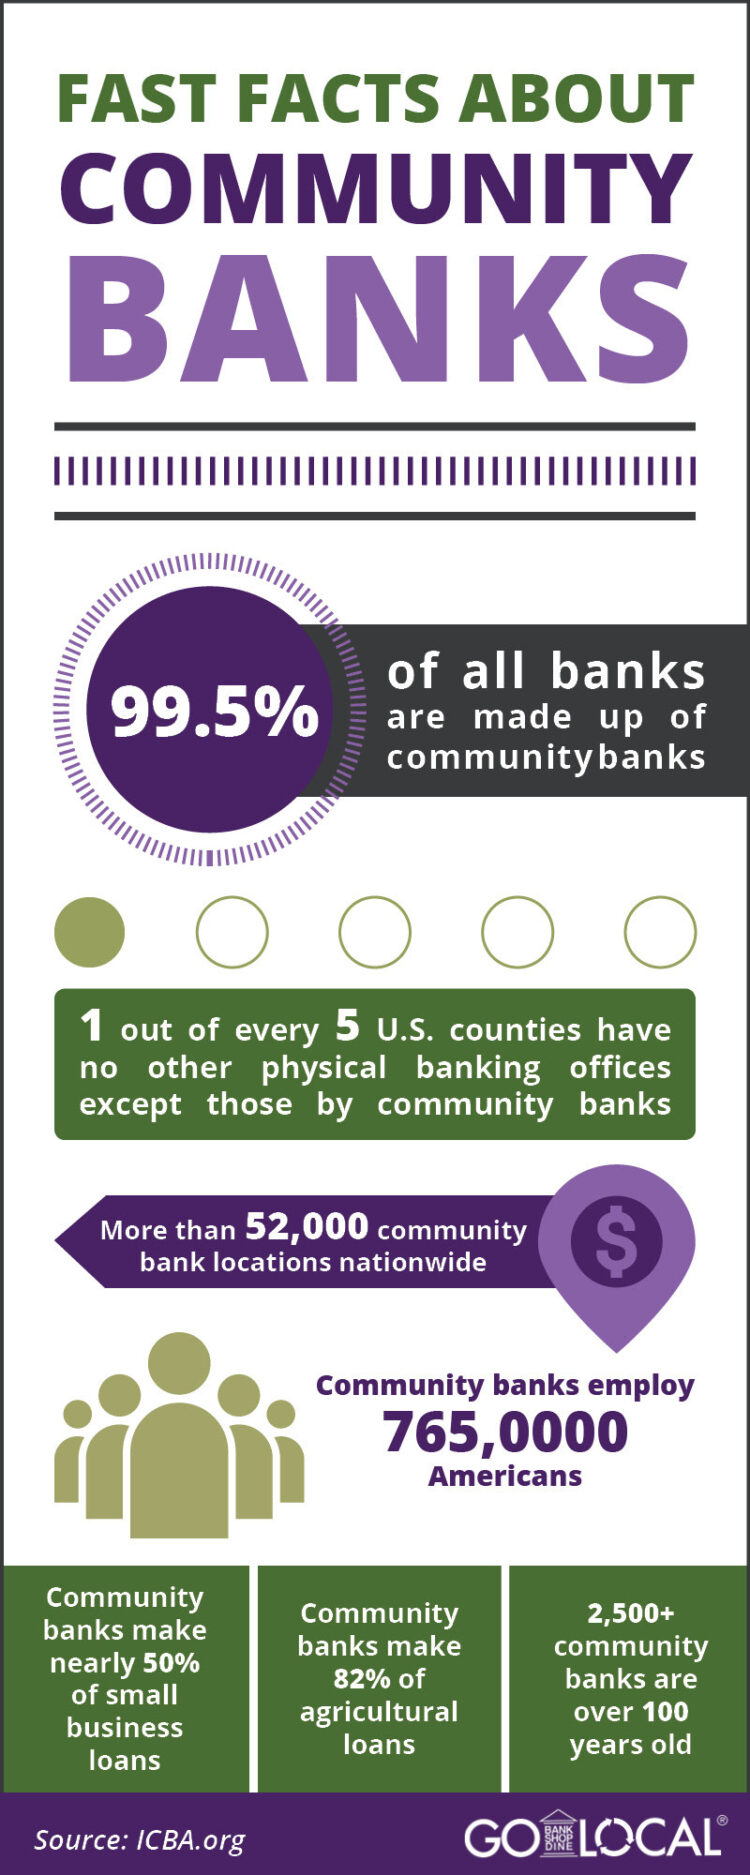 Infographic featuring facts about community banks